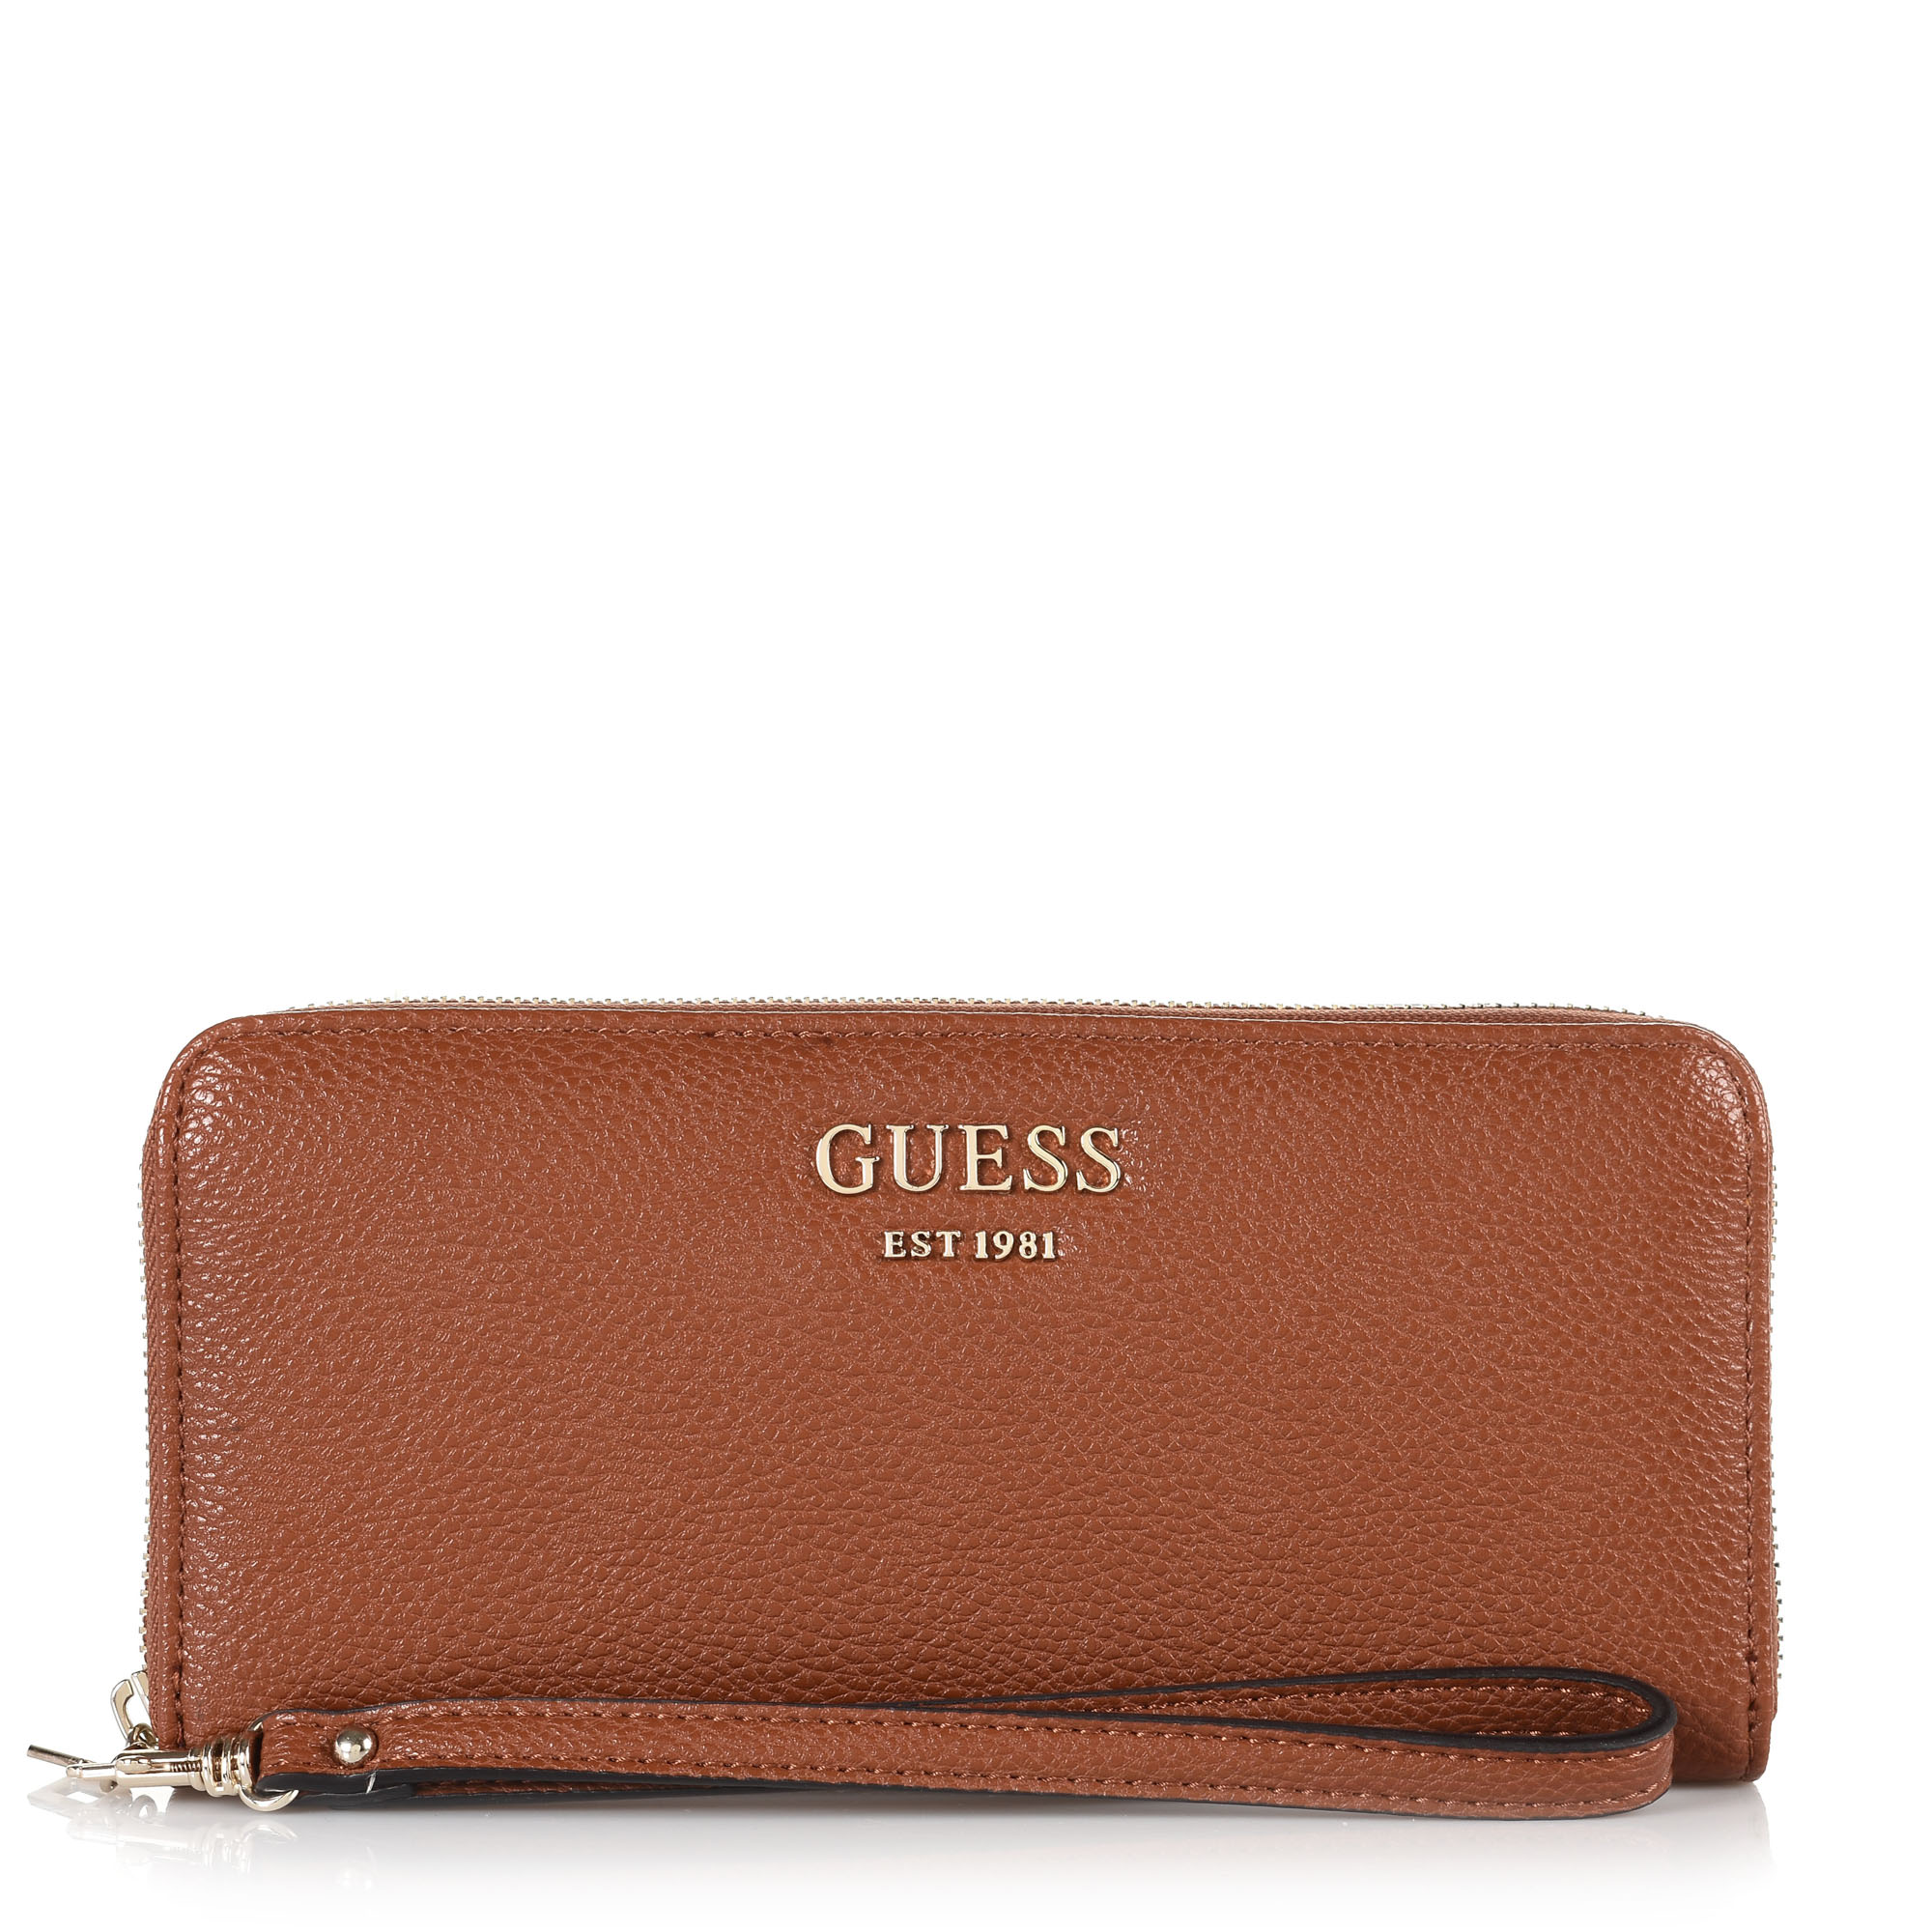 530878b406 Brand Bags Πορτοφόλι Κασετίνα Guess Vikky SLG SWVG699546